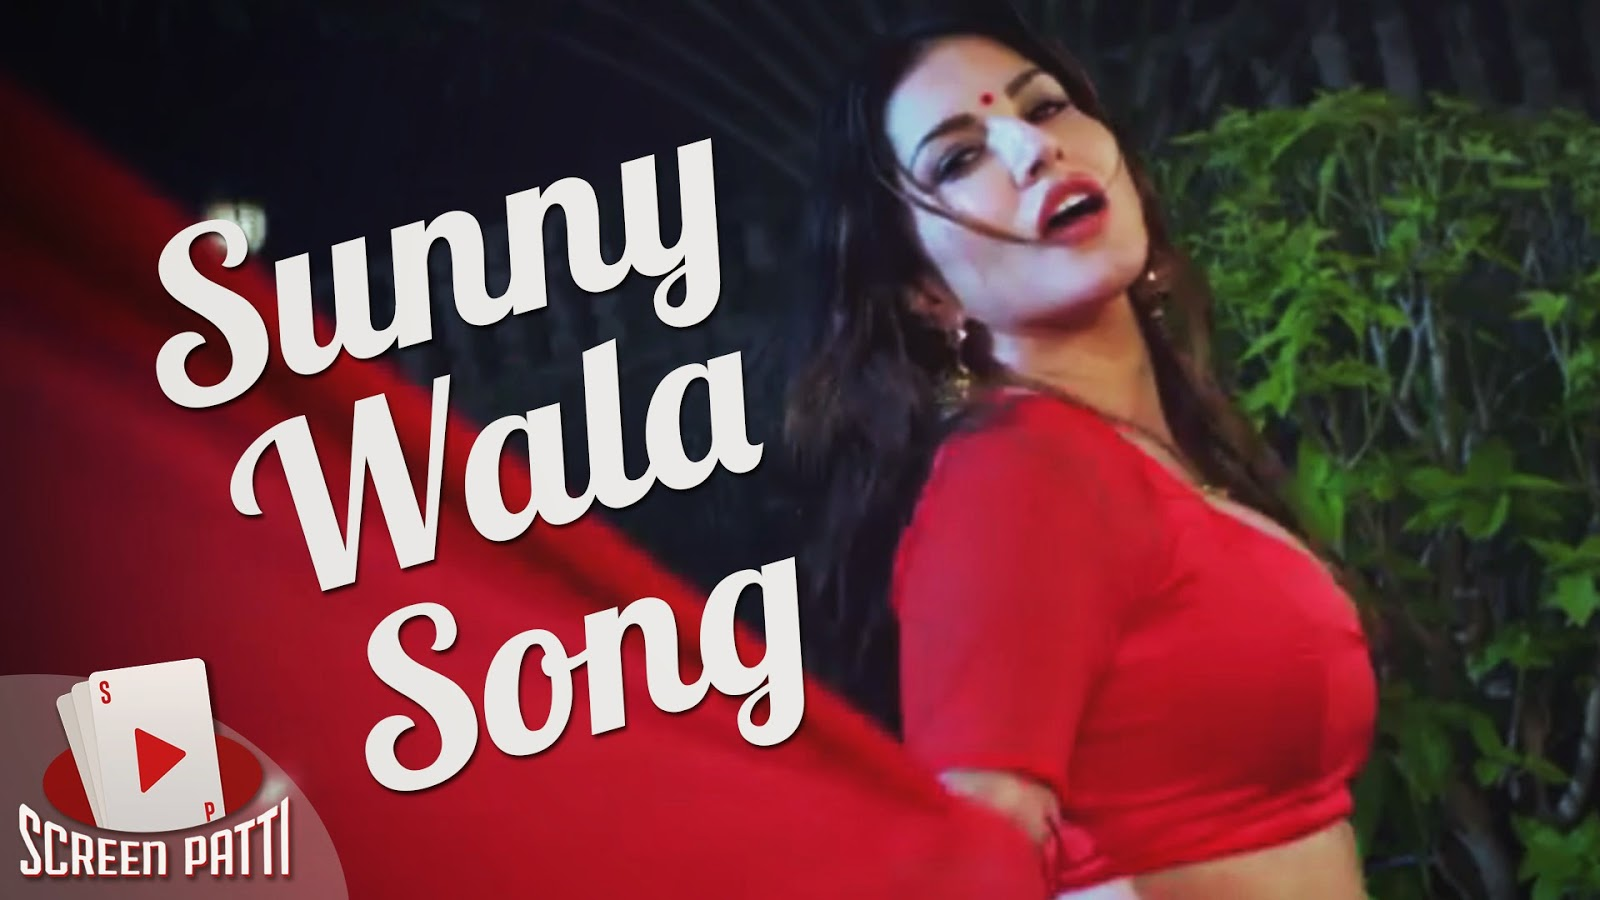 Sunny Wala Video Song